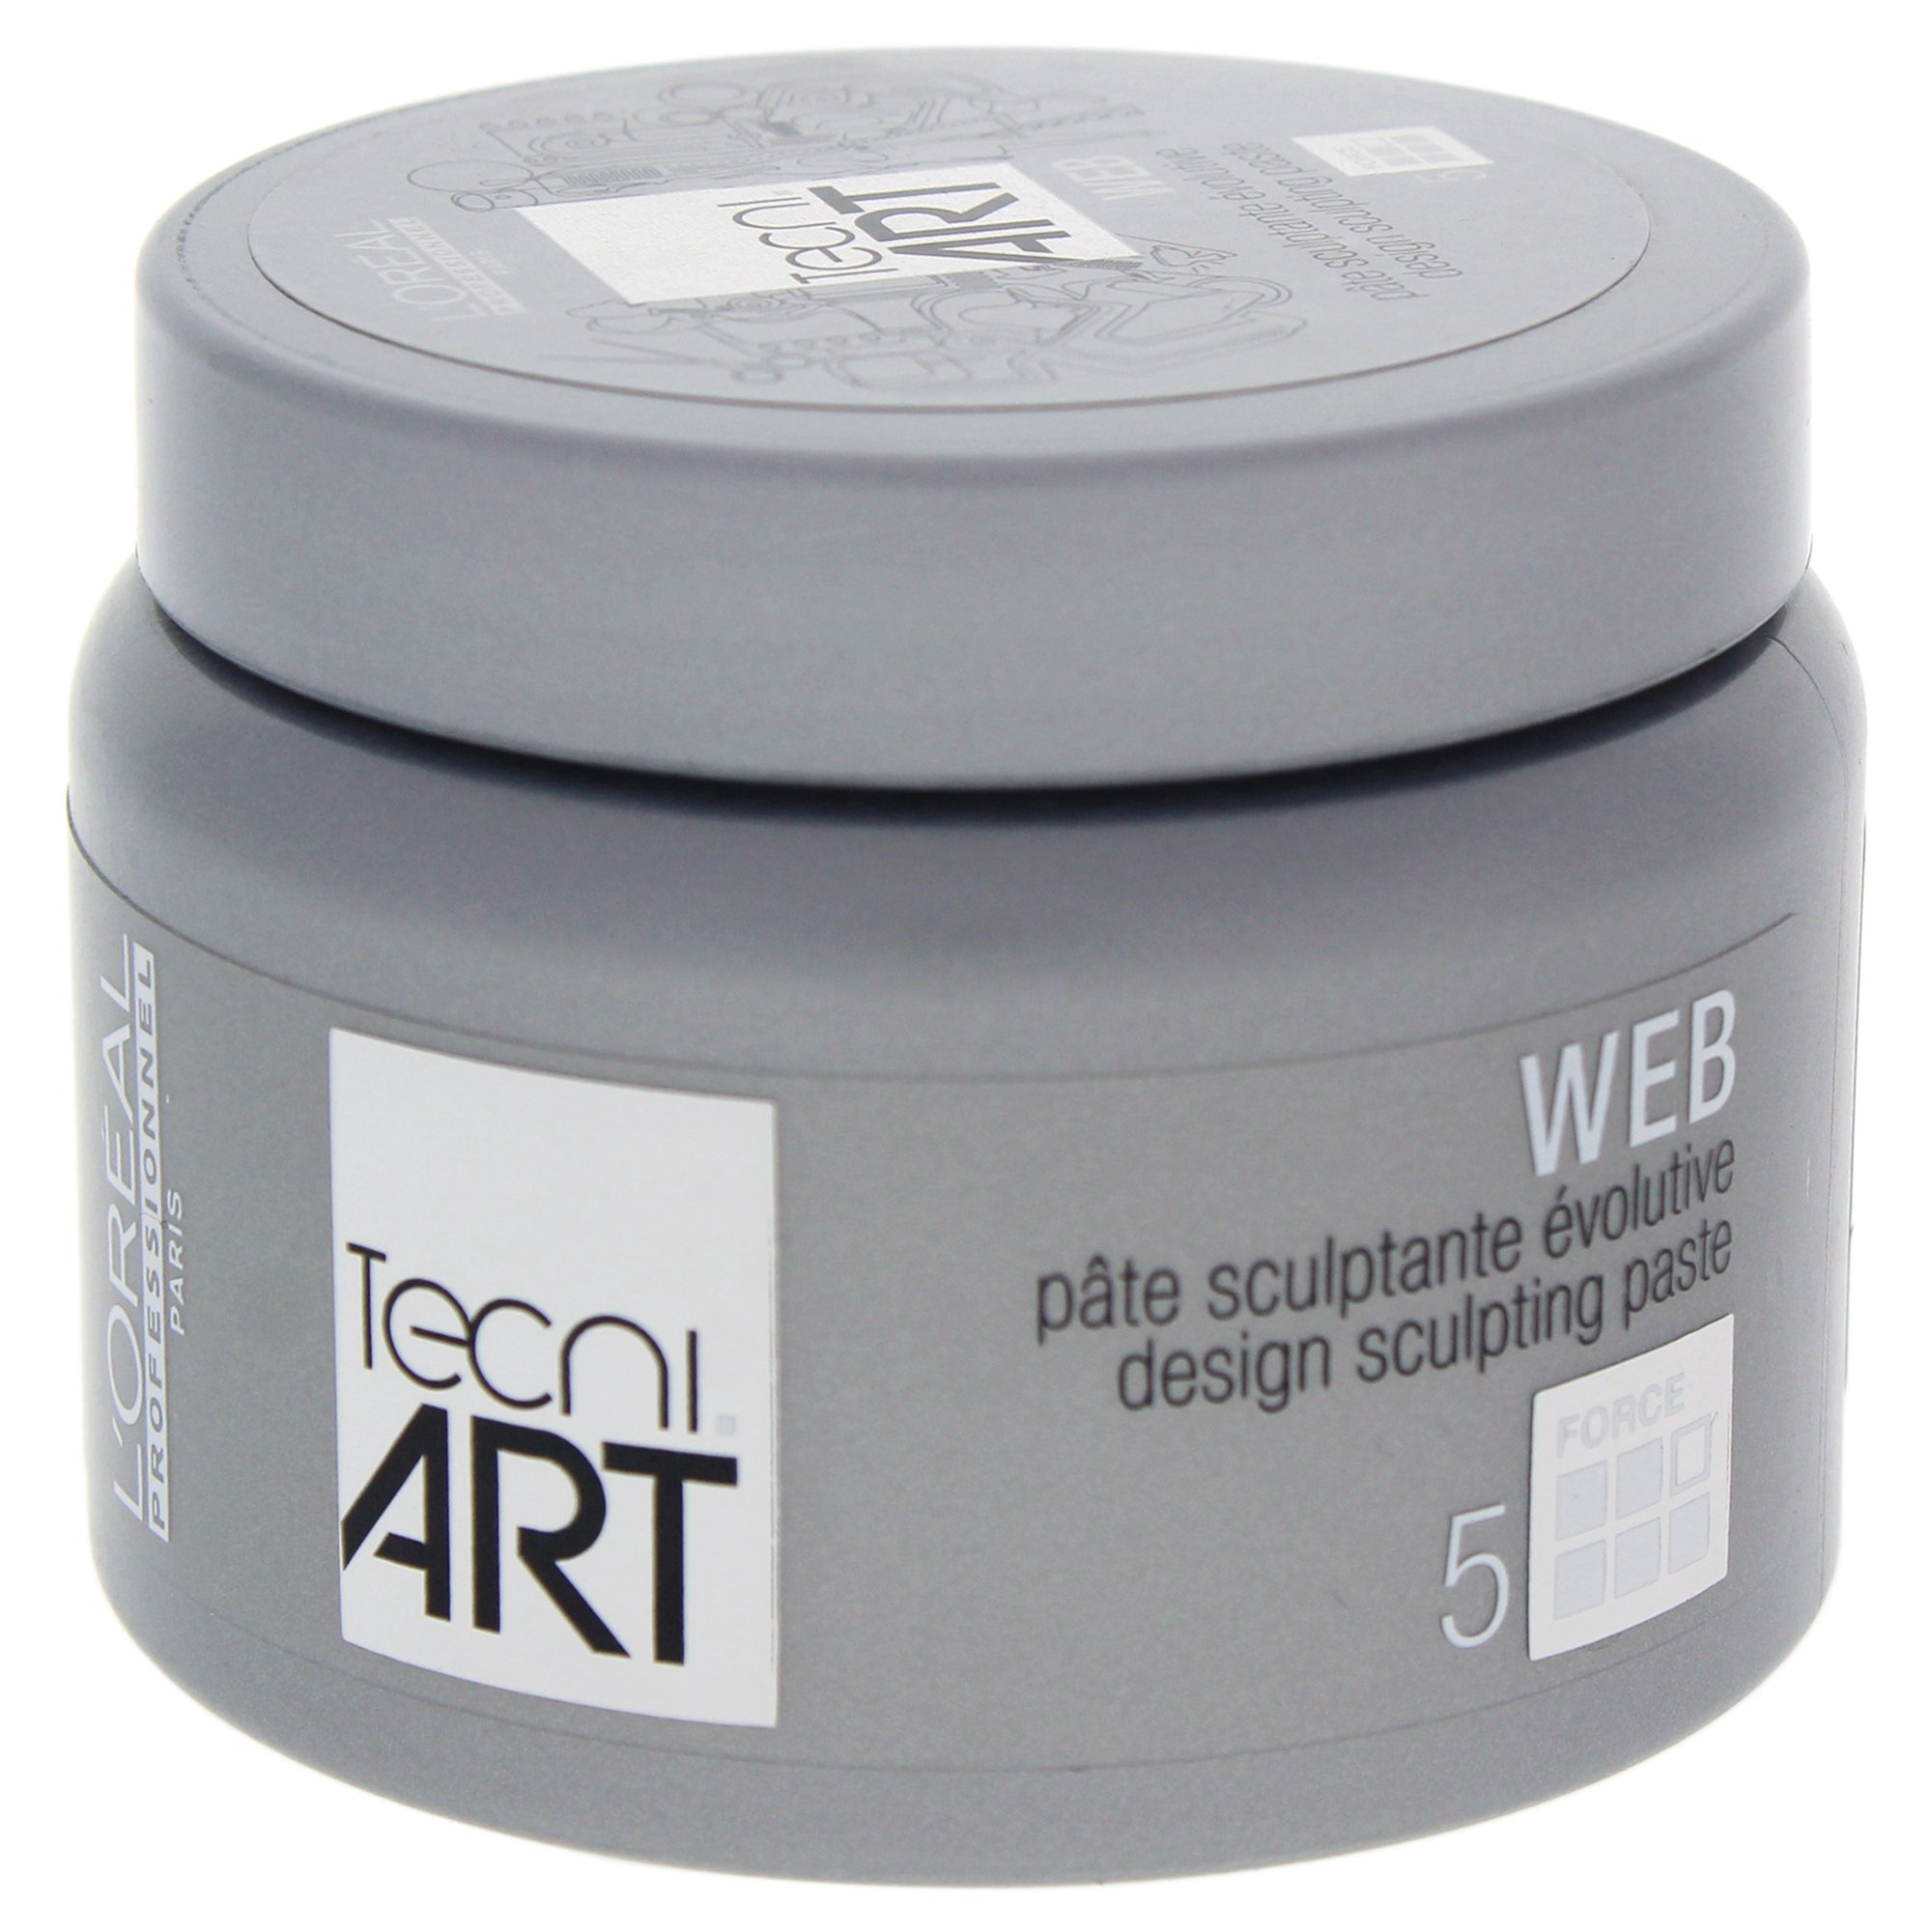 LOreal Professional Tecni Art force 5 Web Design Sculpting Paste, 5 Ounce